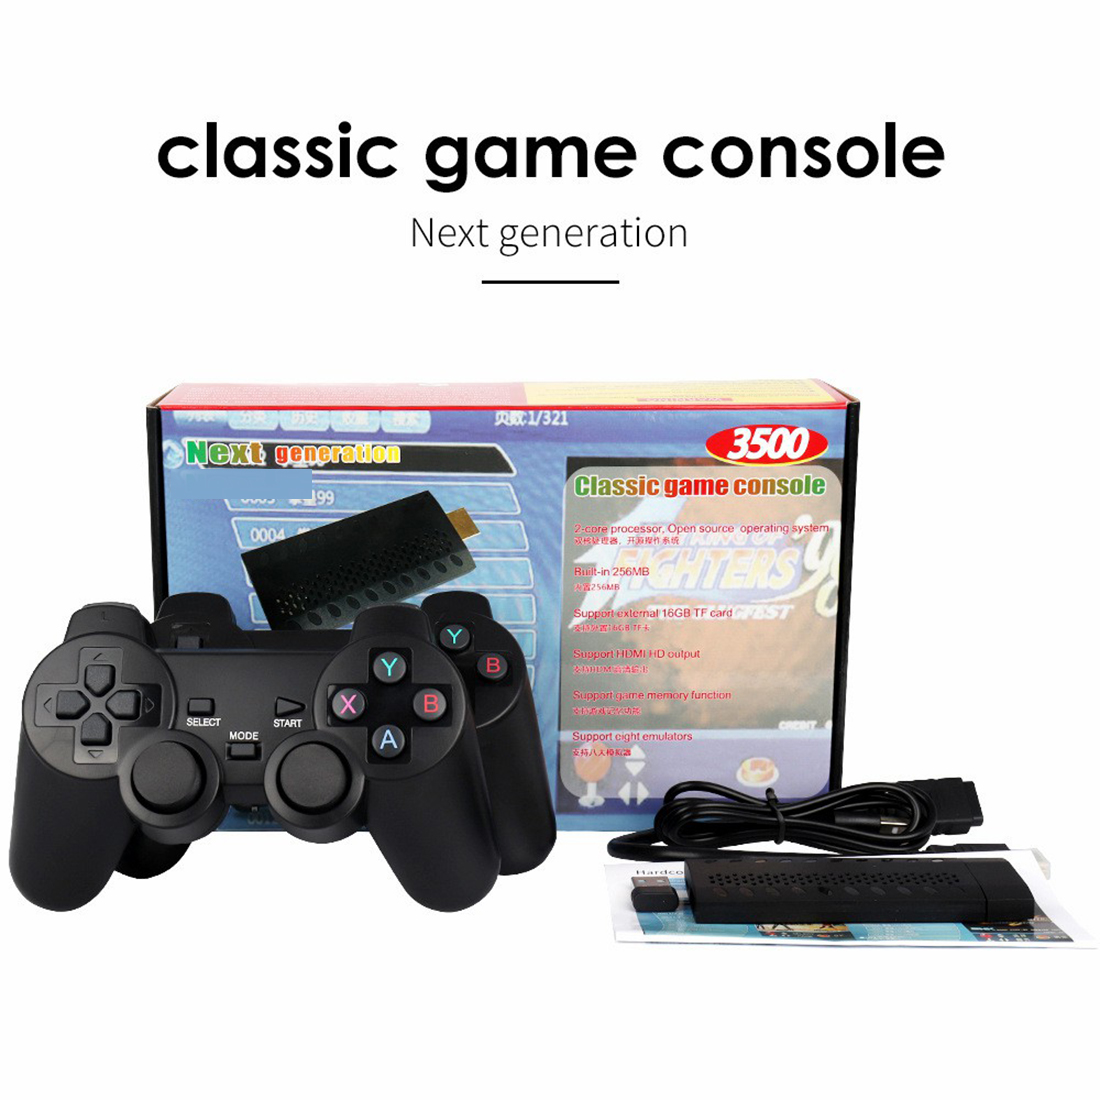 3500 Games Classic Video Game Console Family Arcade